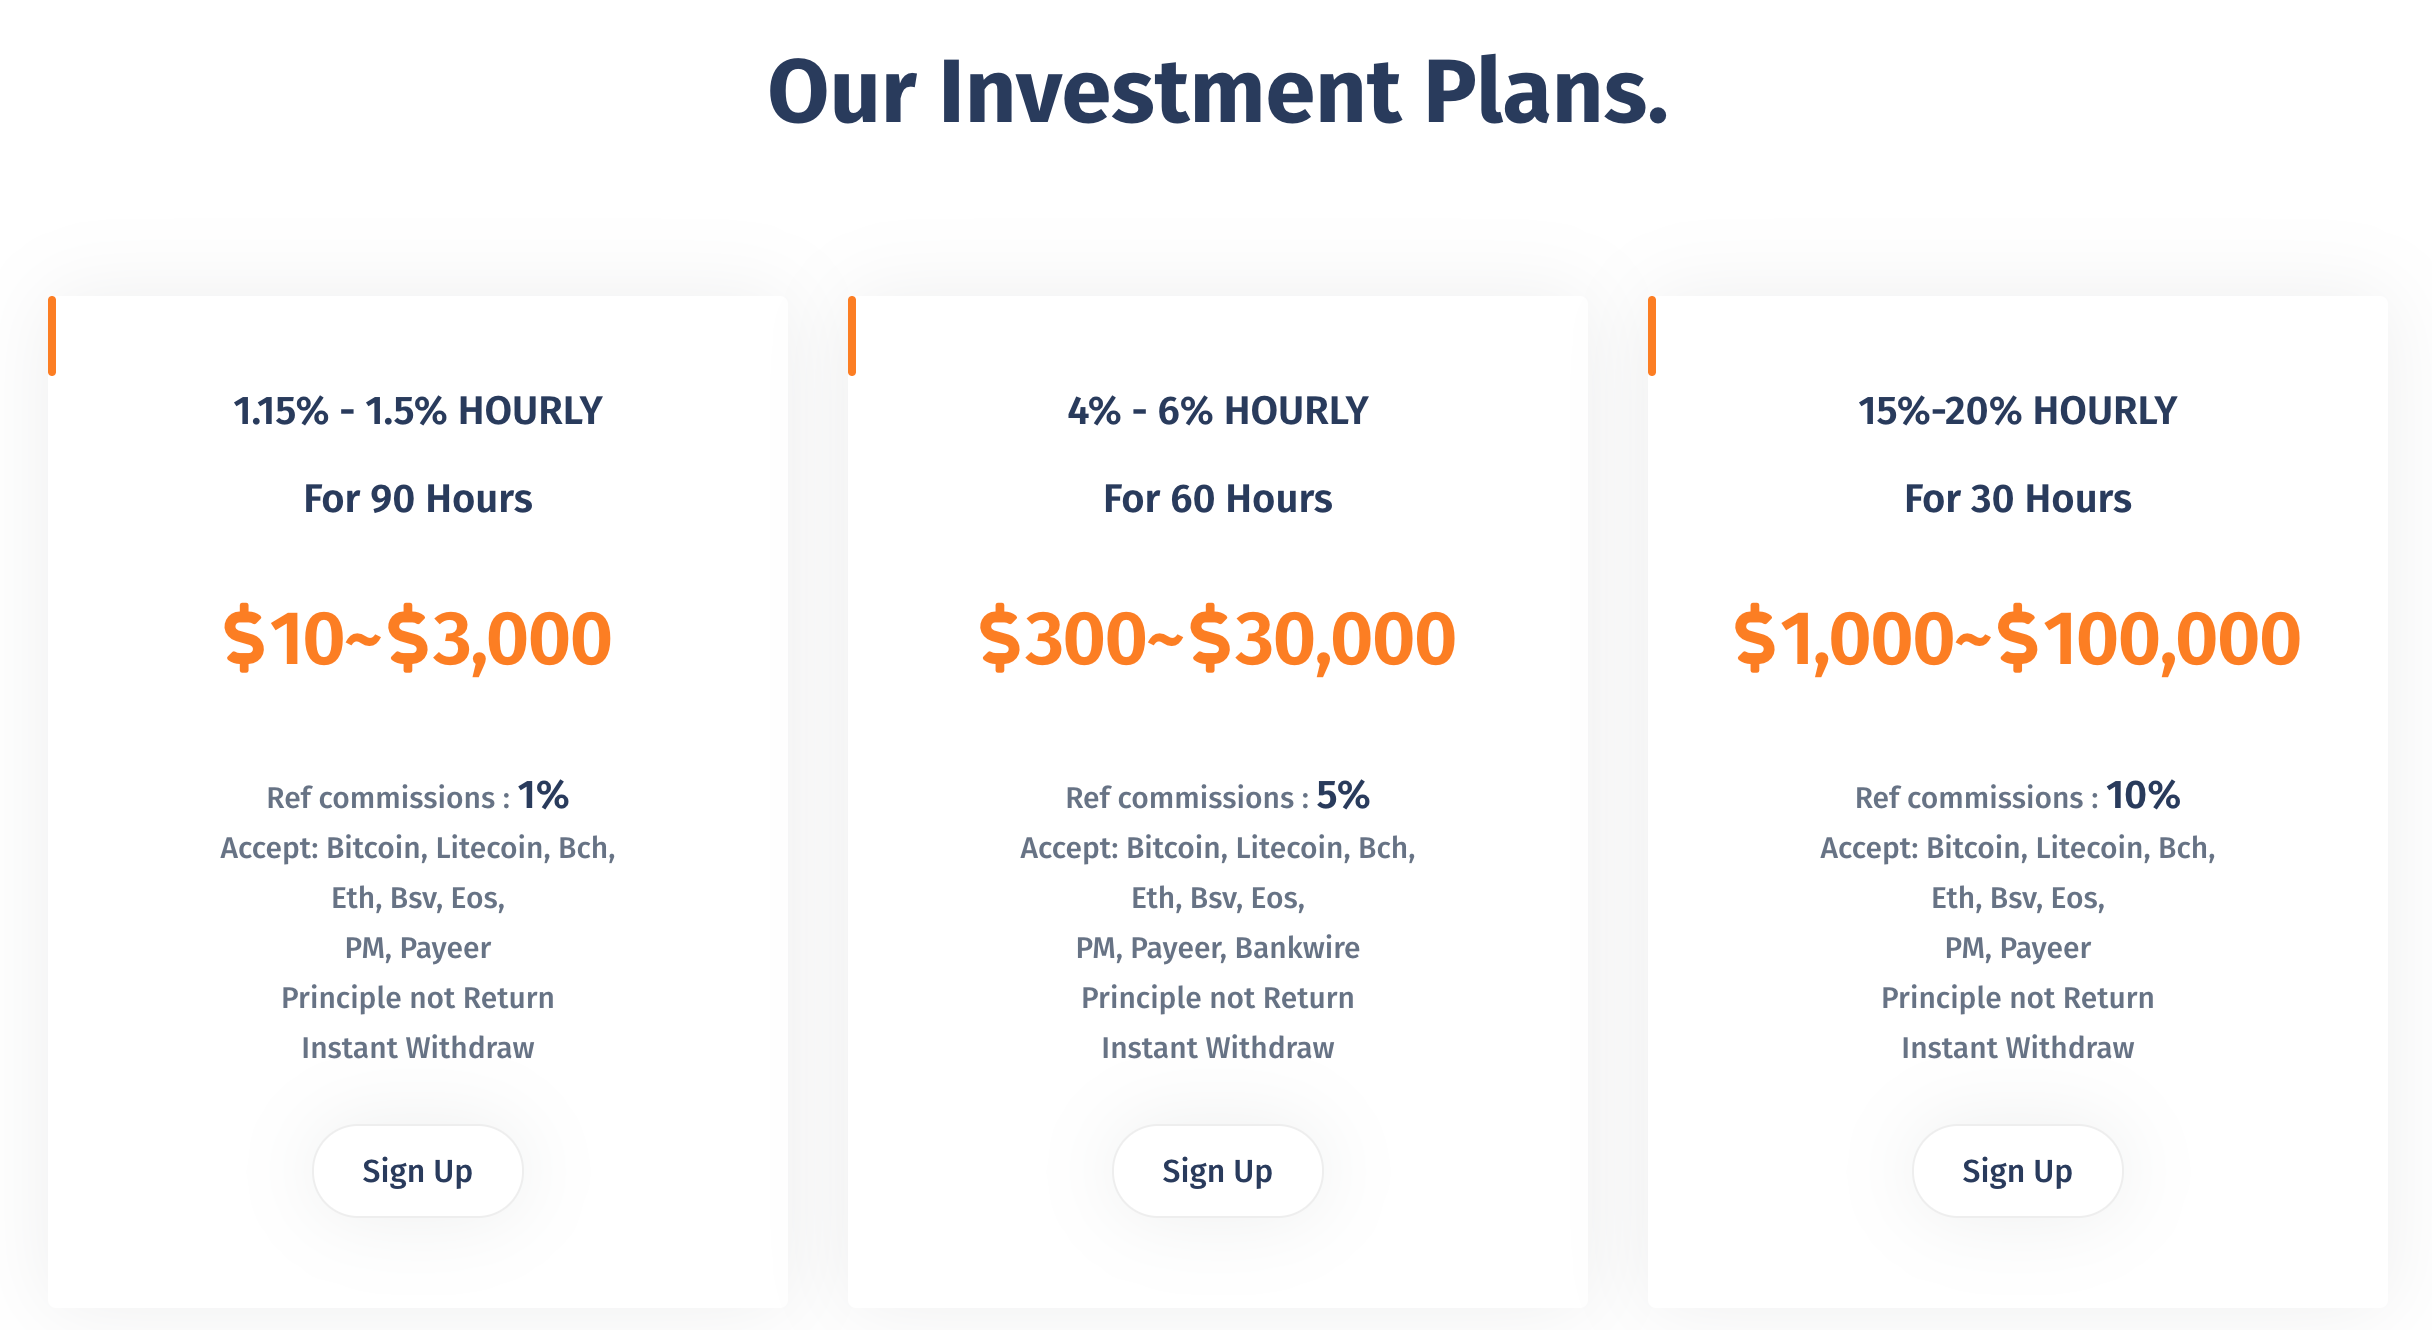 HourlyWind.com review plans